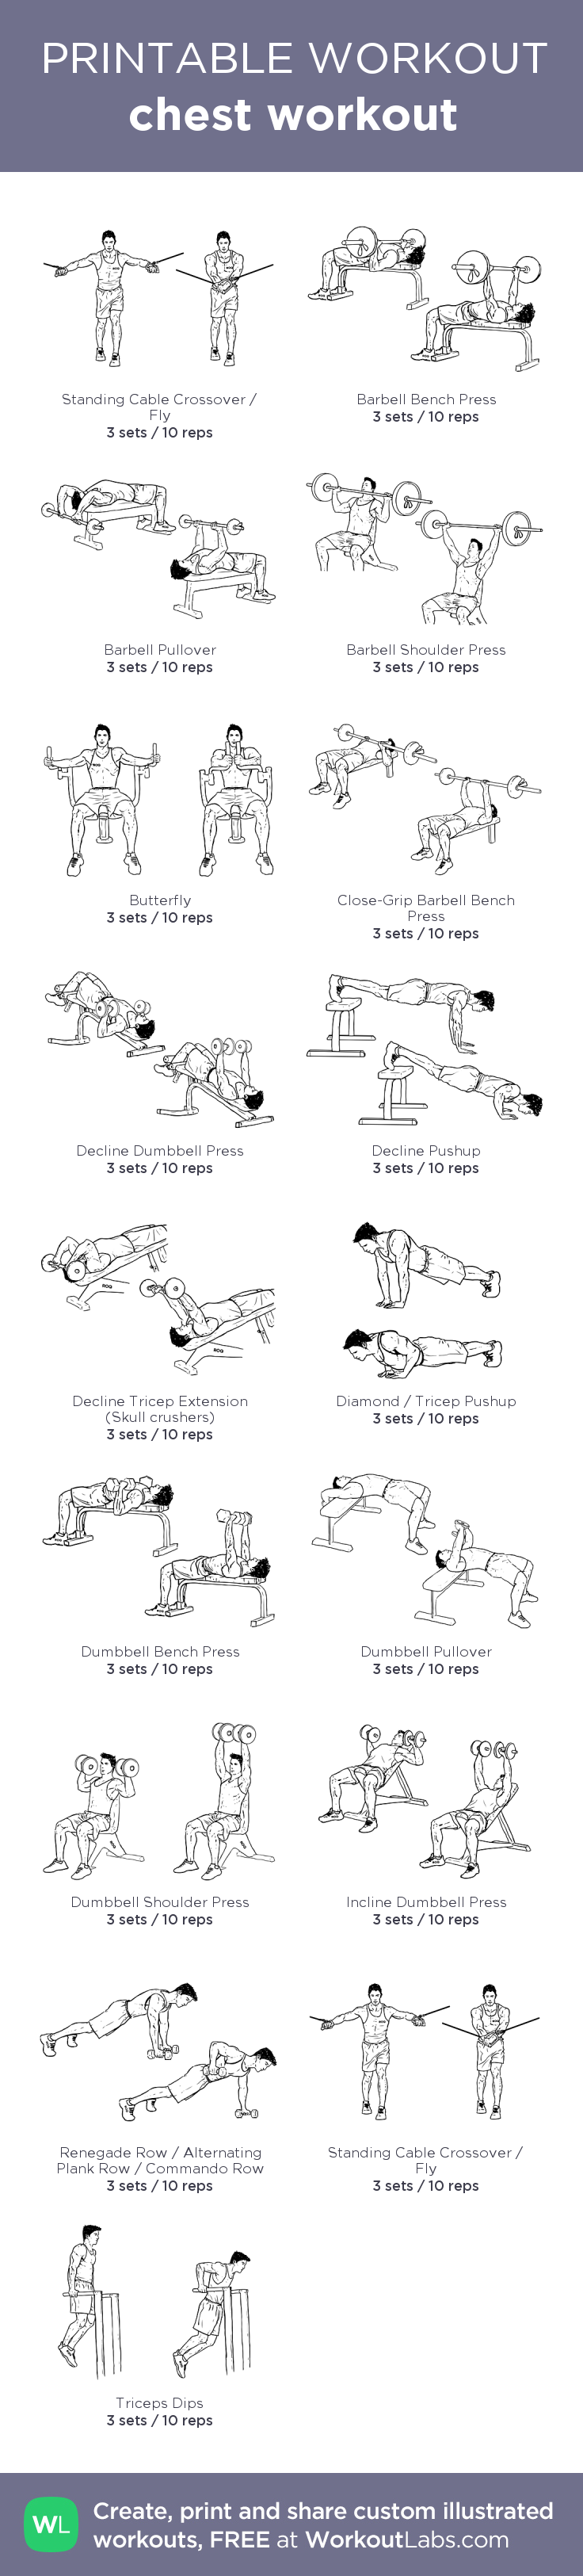 Chest Workout My Custom Printable By WorkoutLabs Workoutlabs Customworkout